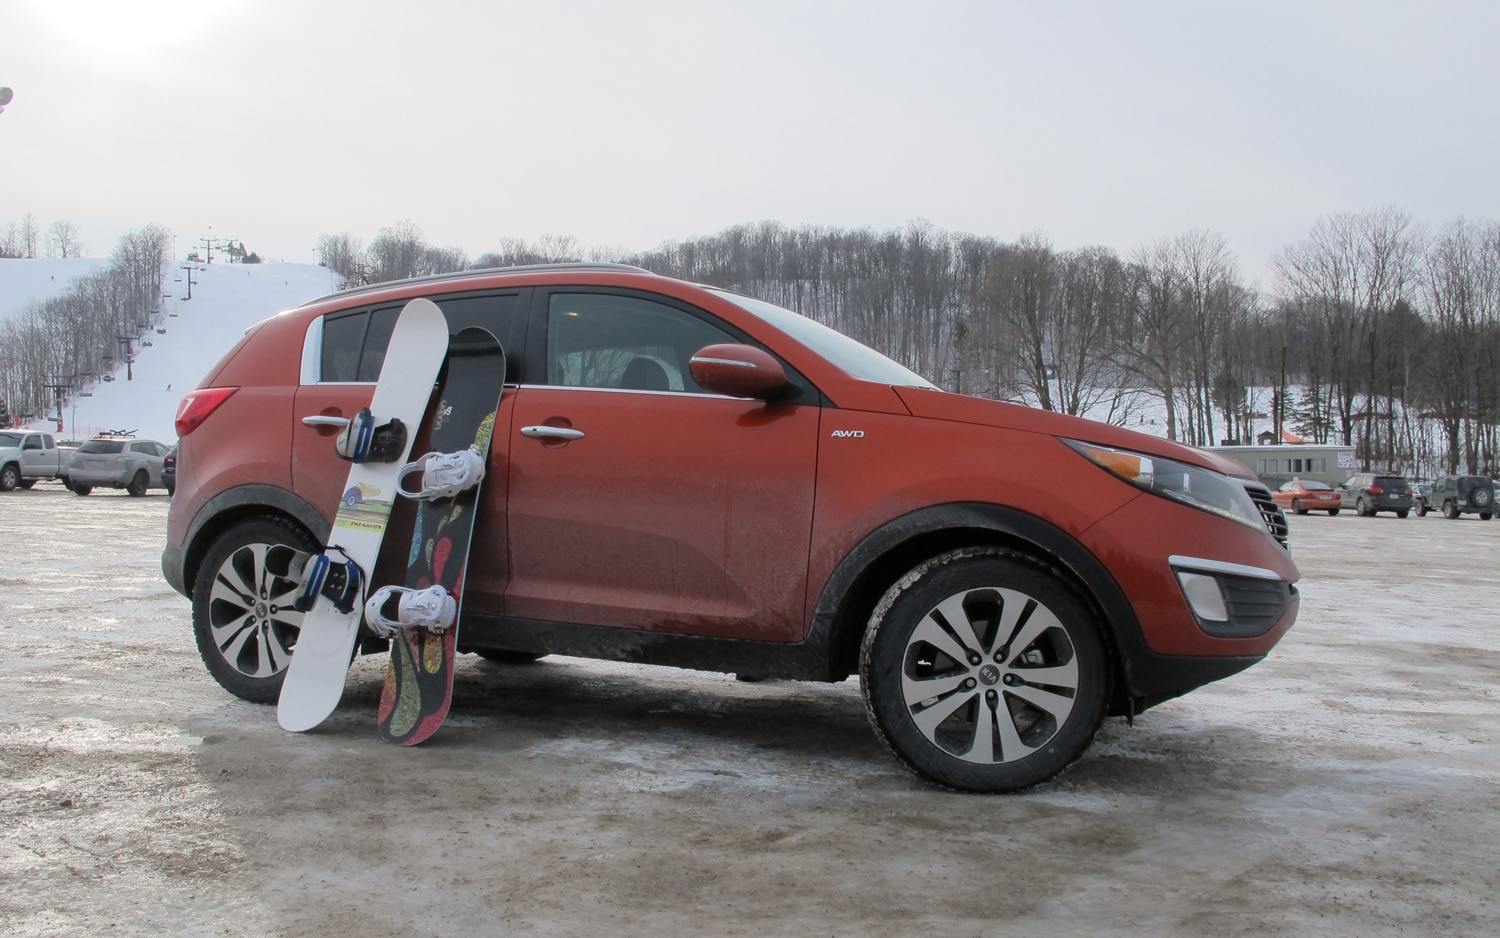 2011 Kia Sportage EX Right Side View1